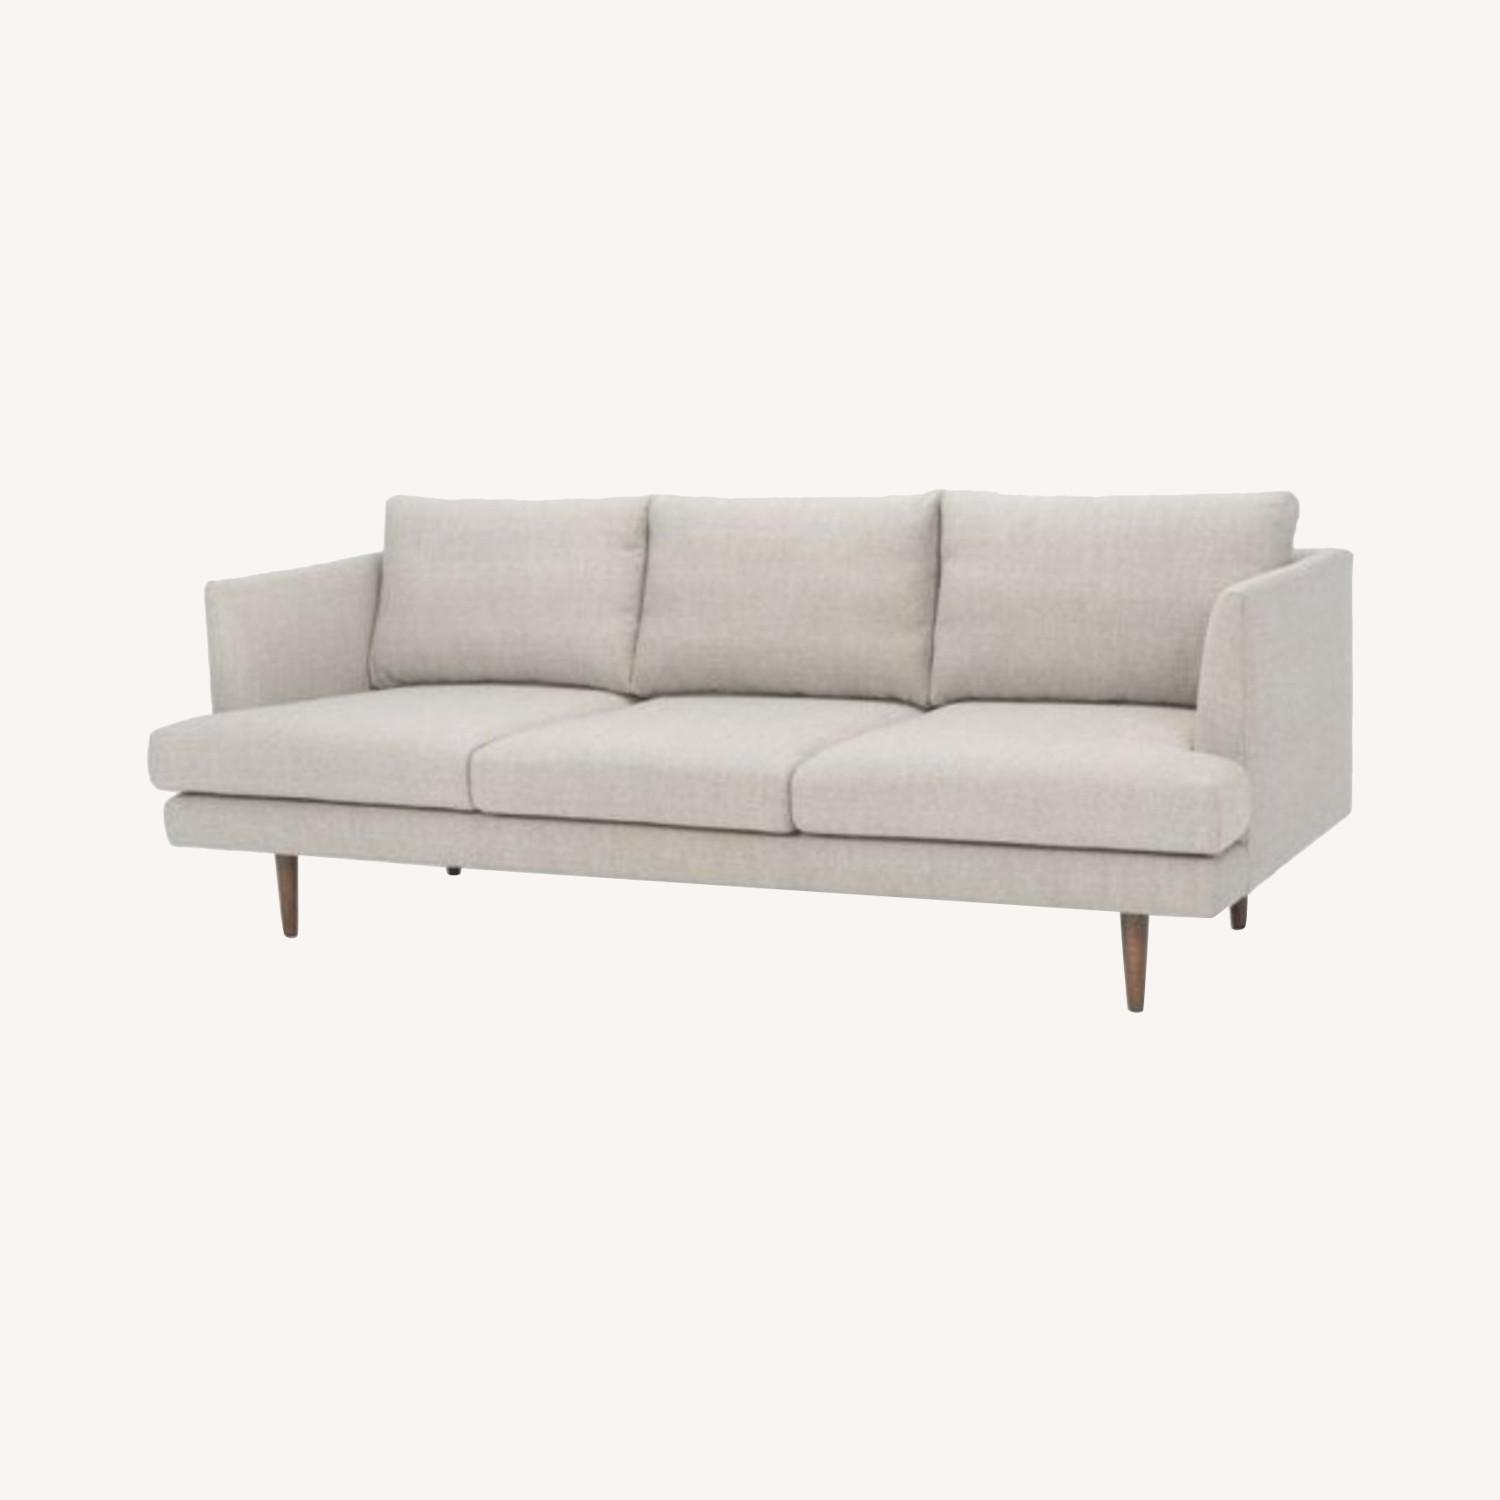 Comfortable Mid-Century Modern Light Grey Couch - image-0